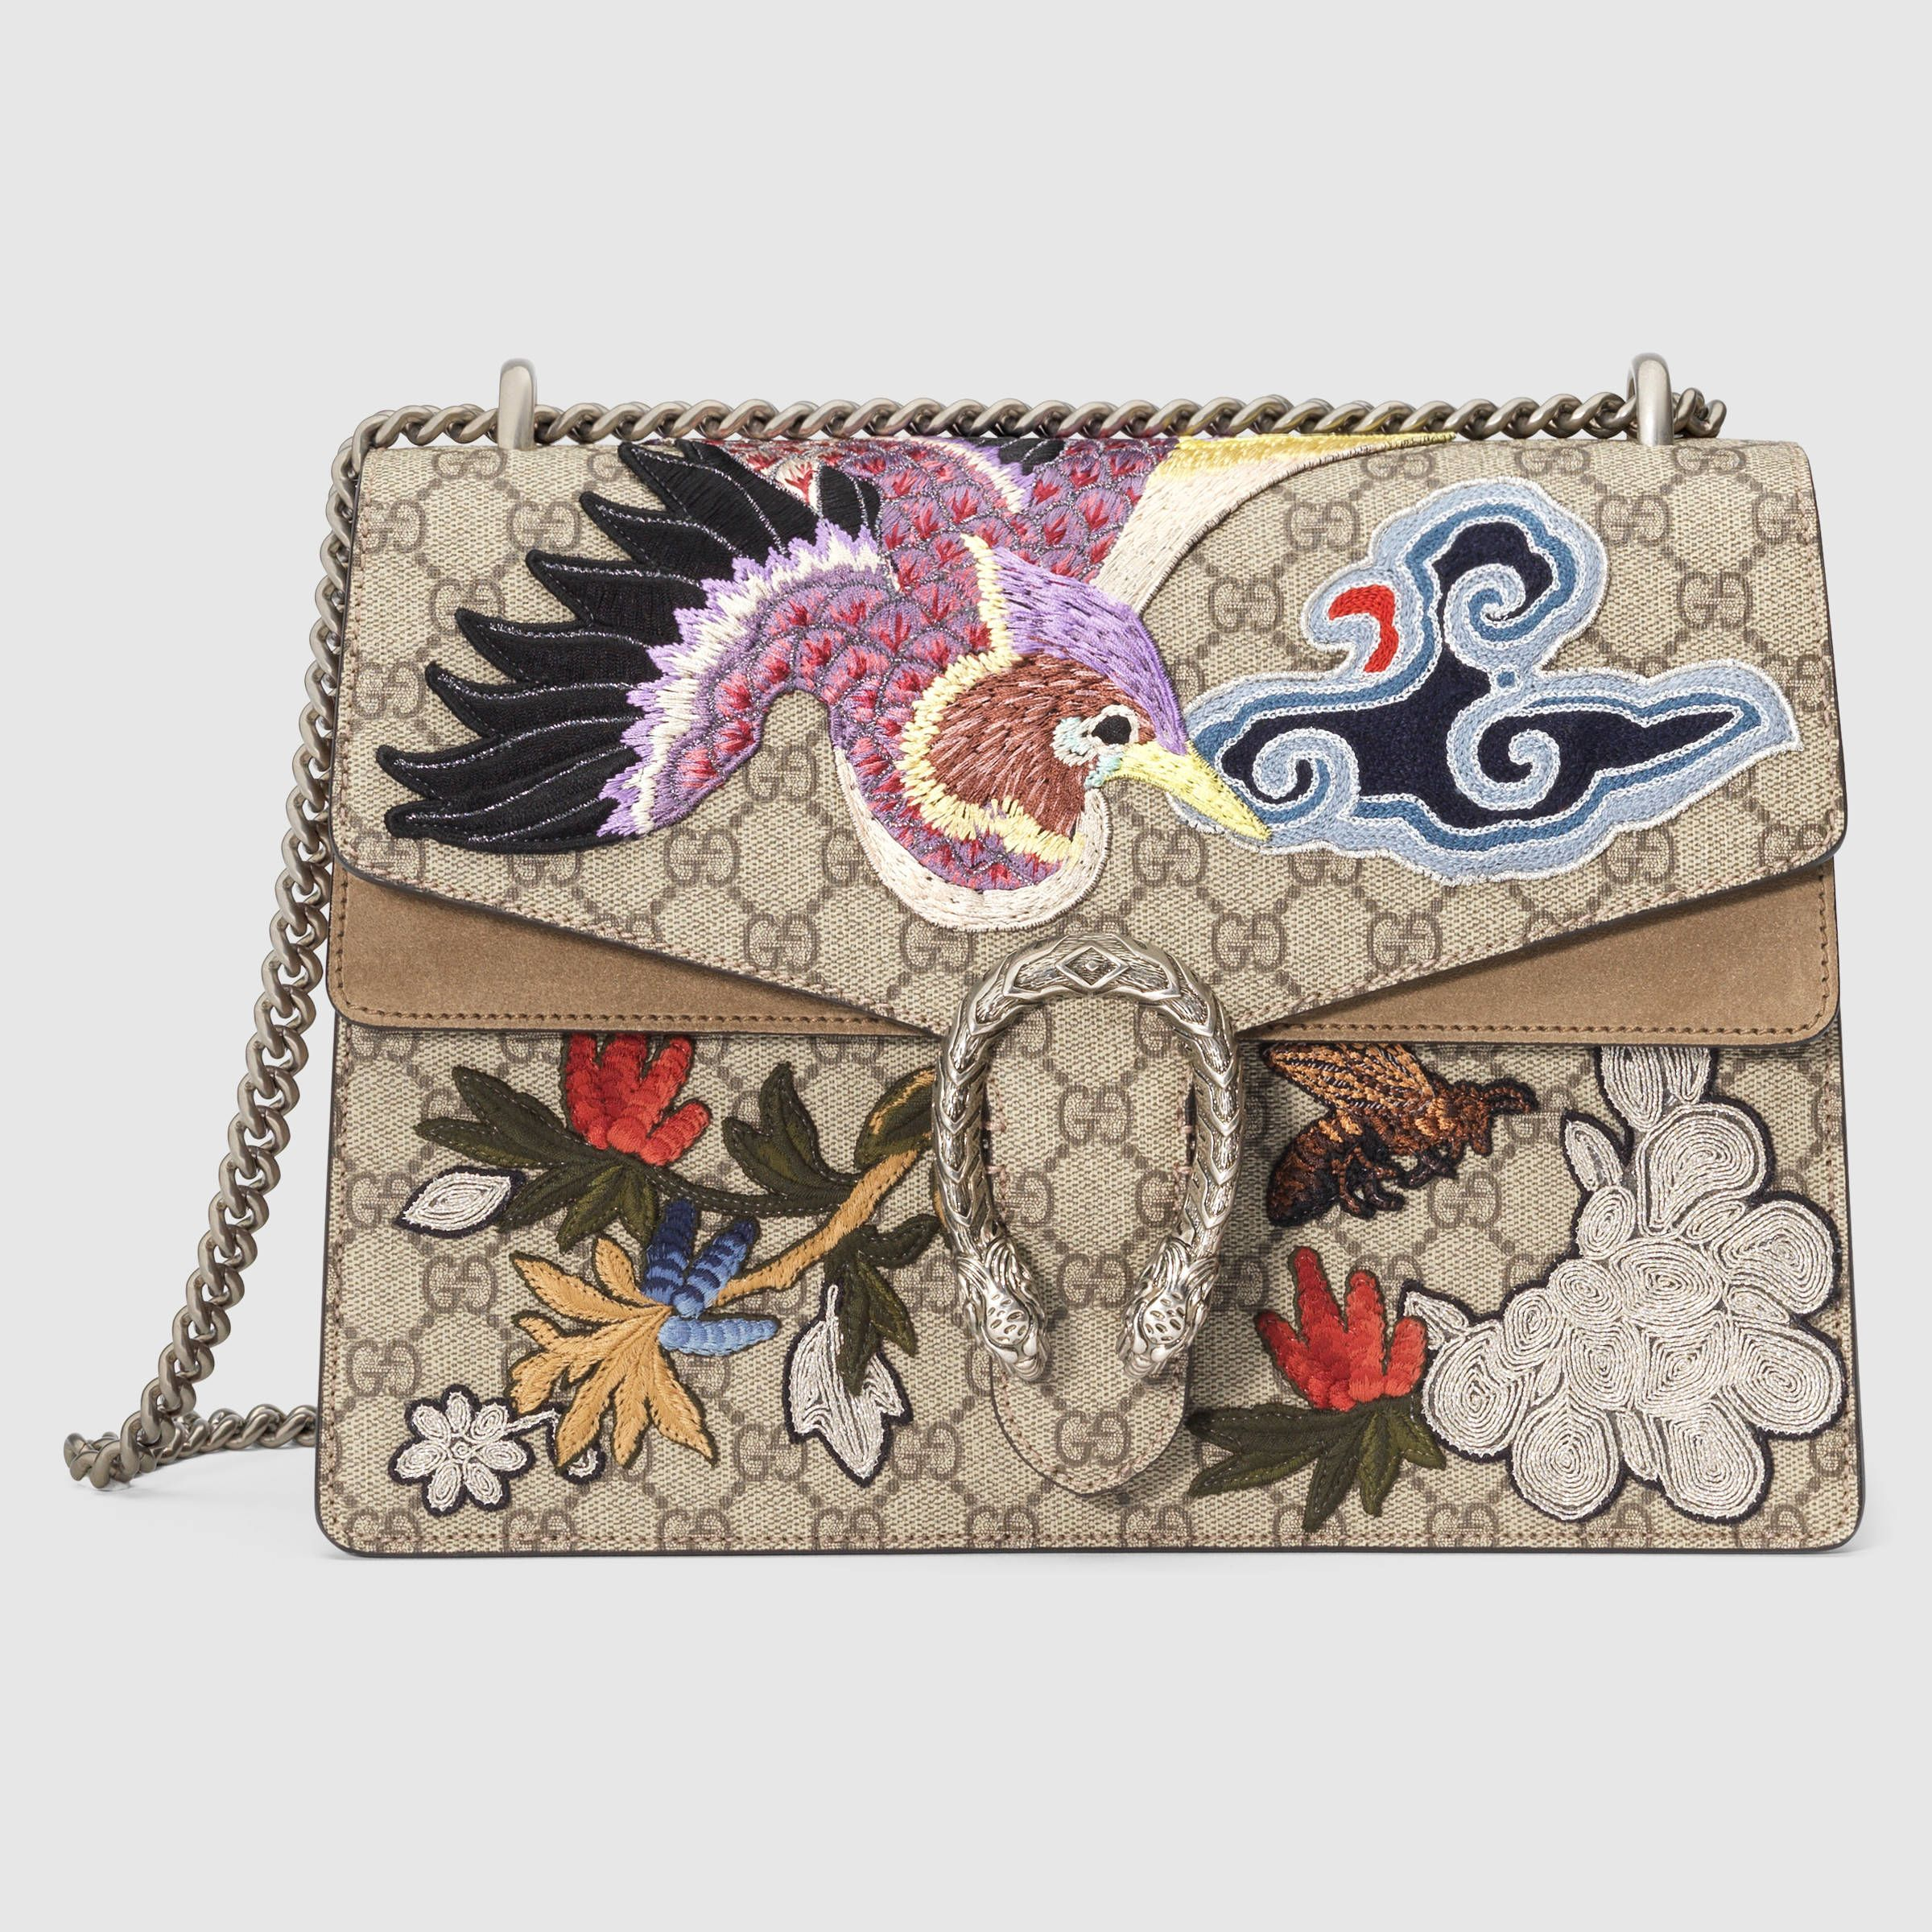 ec0532ea9ac Gucci Women - Gucci Beige Ebony Dionysus w Bird and Flowers GG Supreme  Canvas w taupe suede sides shoulder bag  3